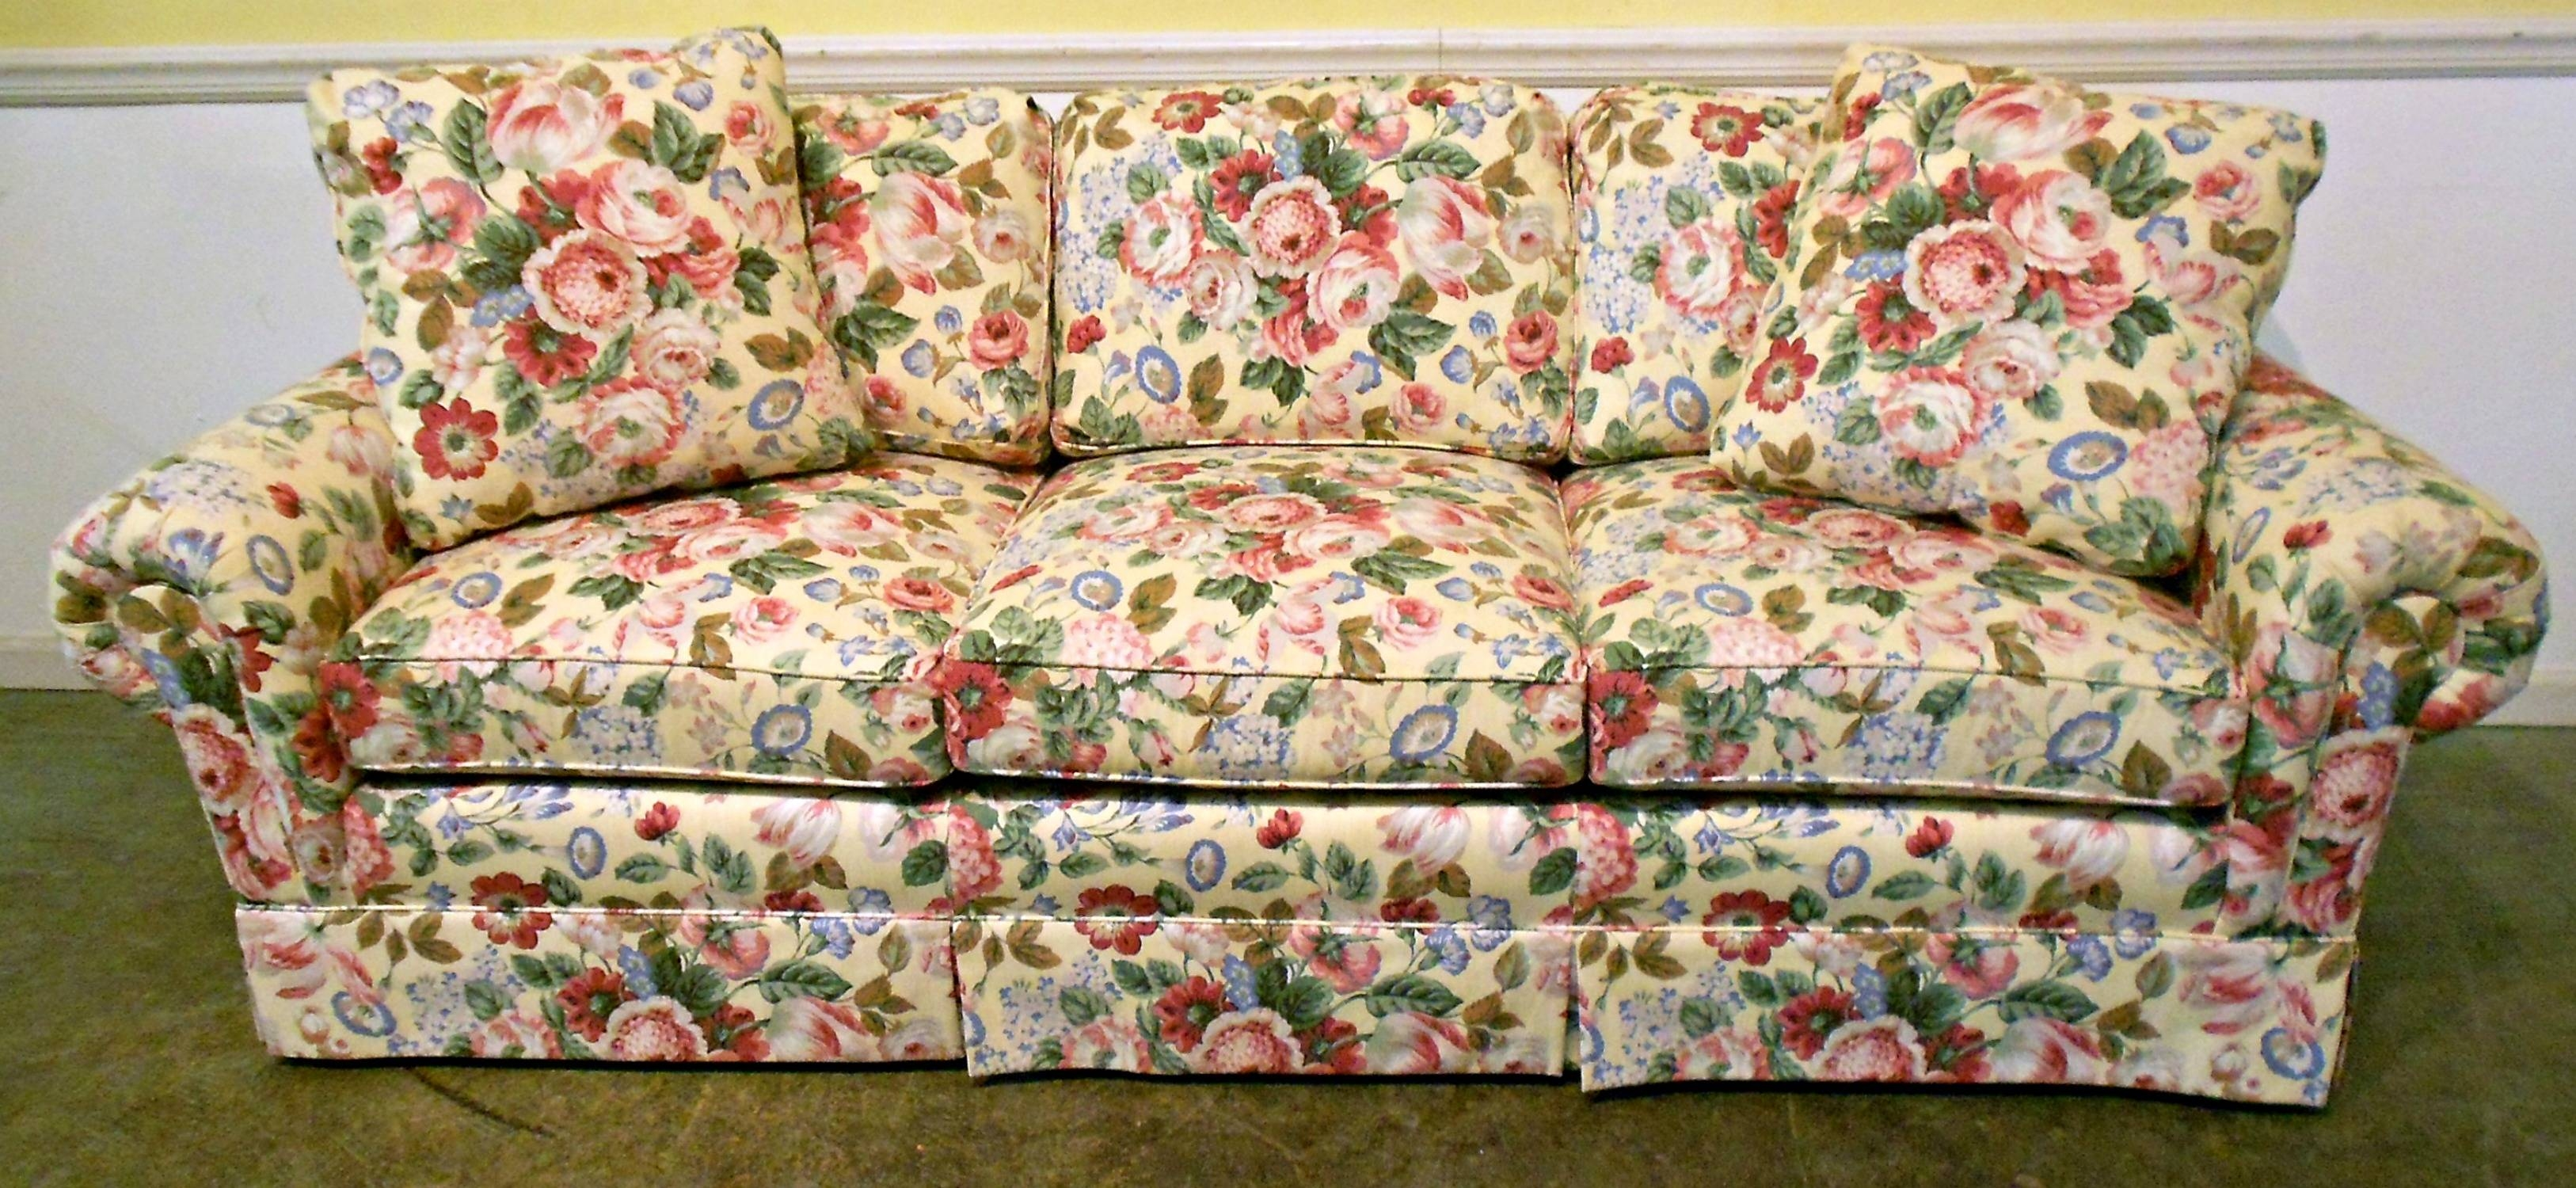 Floral Sofas Uk | Sofas Decoration regarding Floral Sofas And Chairs (Image 8 of 15)